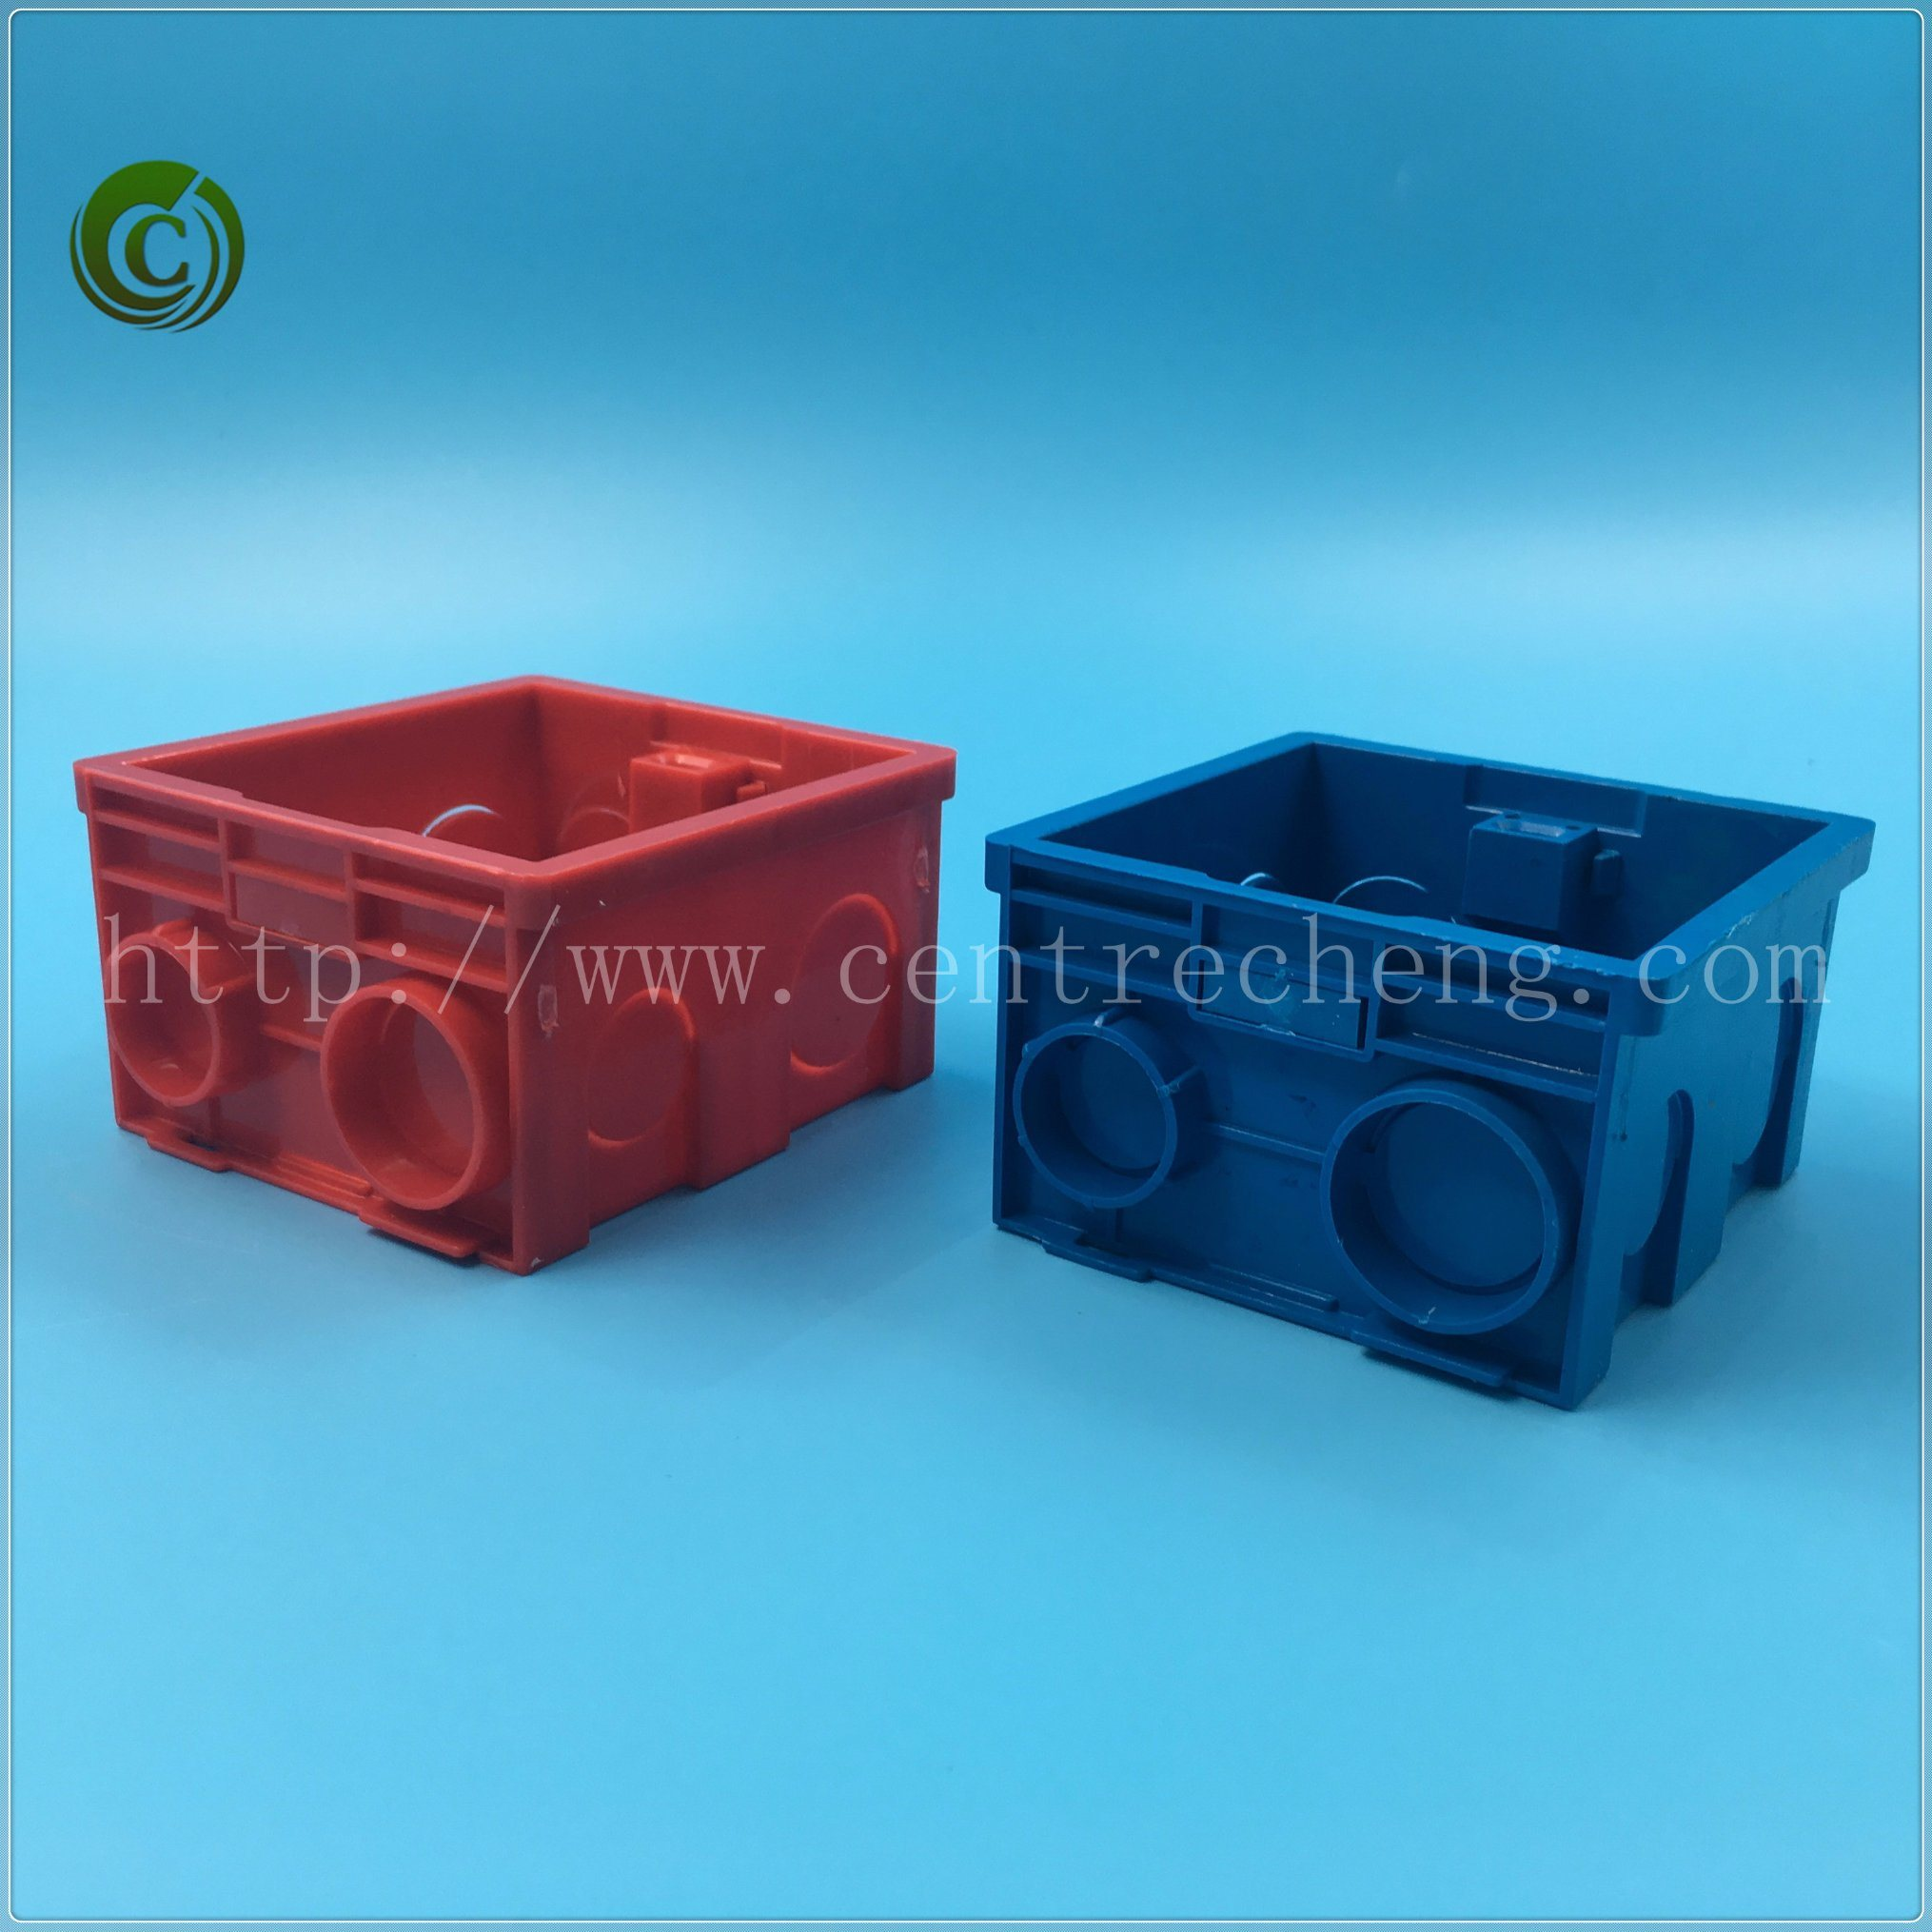 China Electrical Wall Switch PVC Junction Box PVC Box Wire Box ...